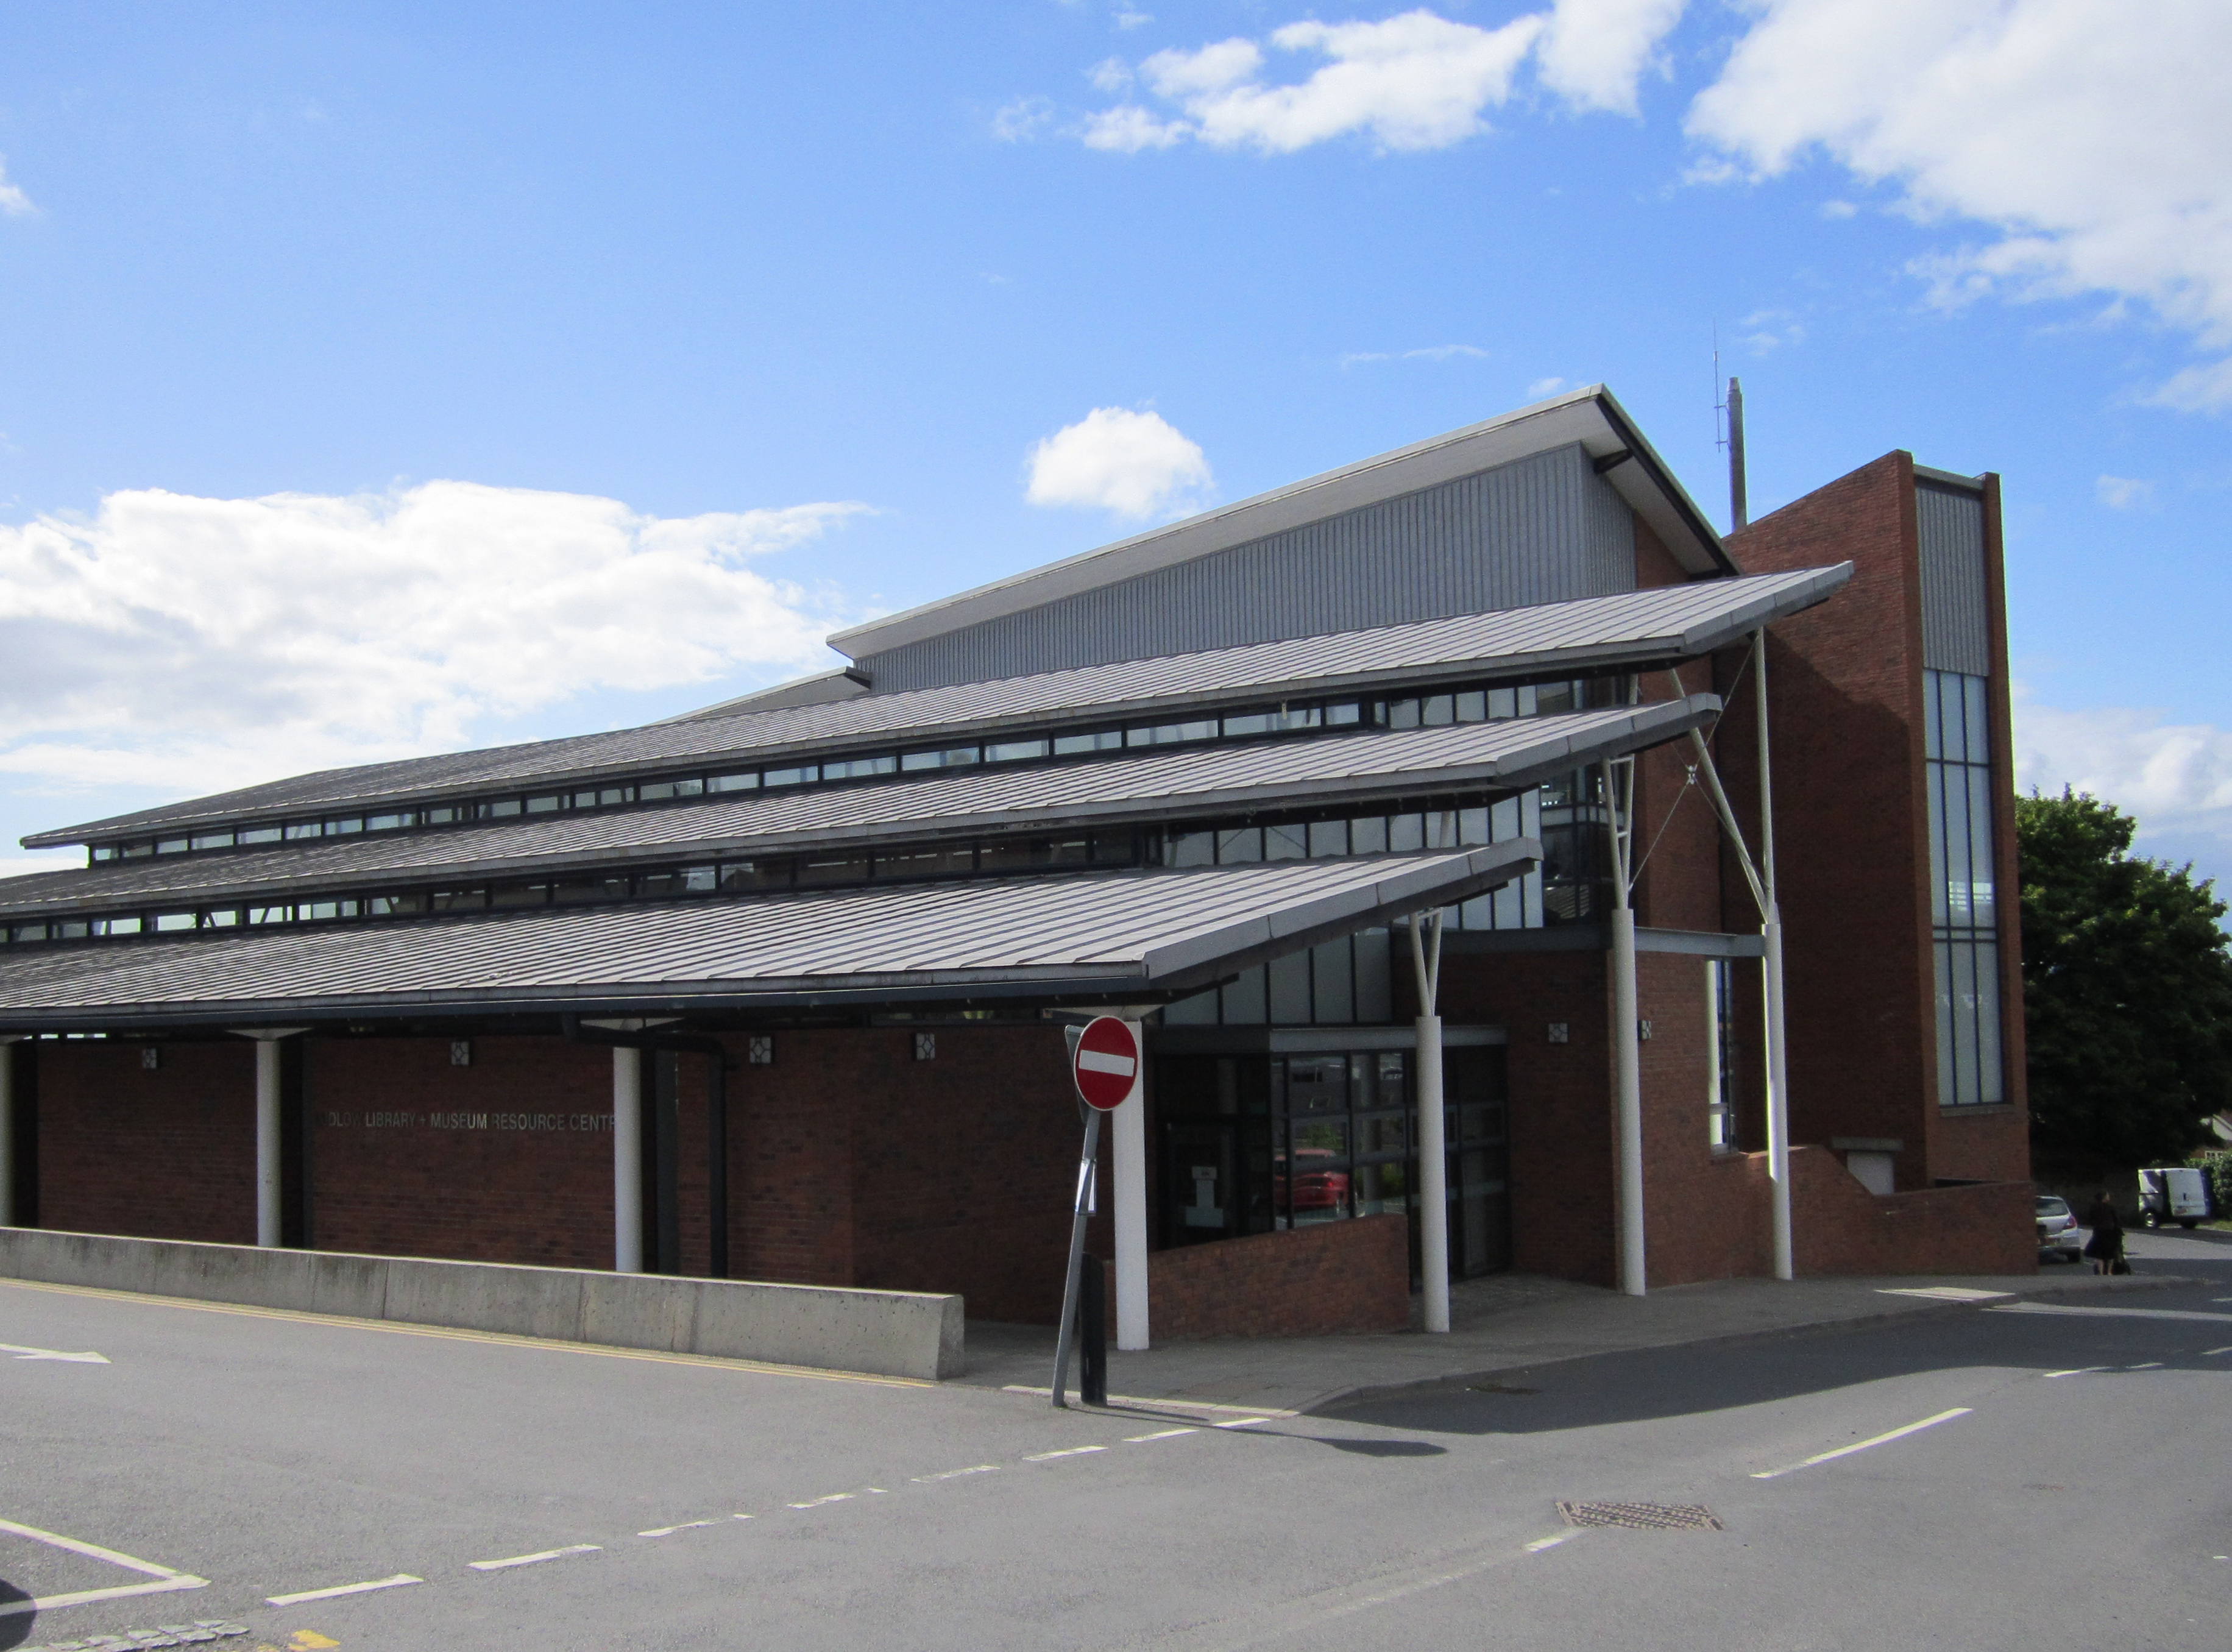 Ludlow Library & Museum Resource Centre